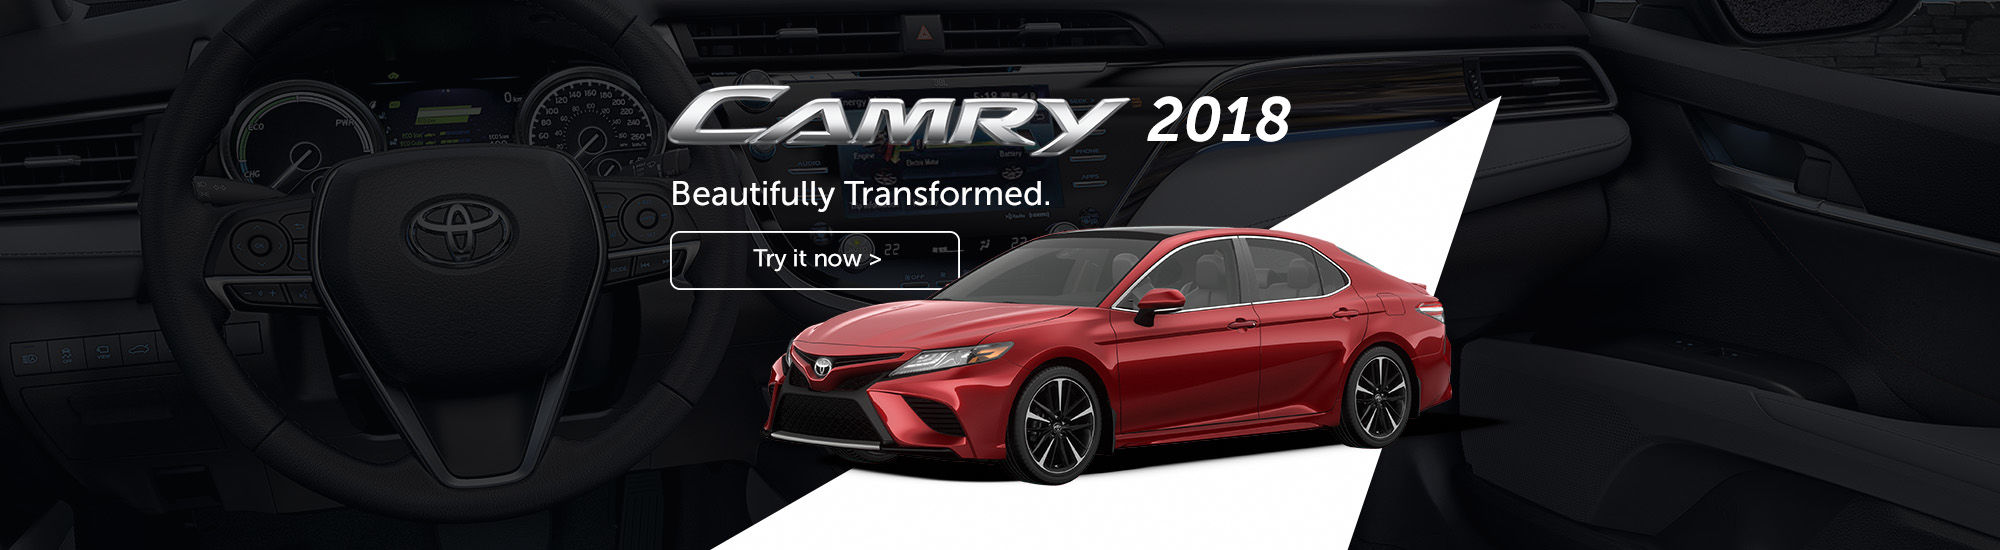 2018 Camry beautifully transformed